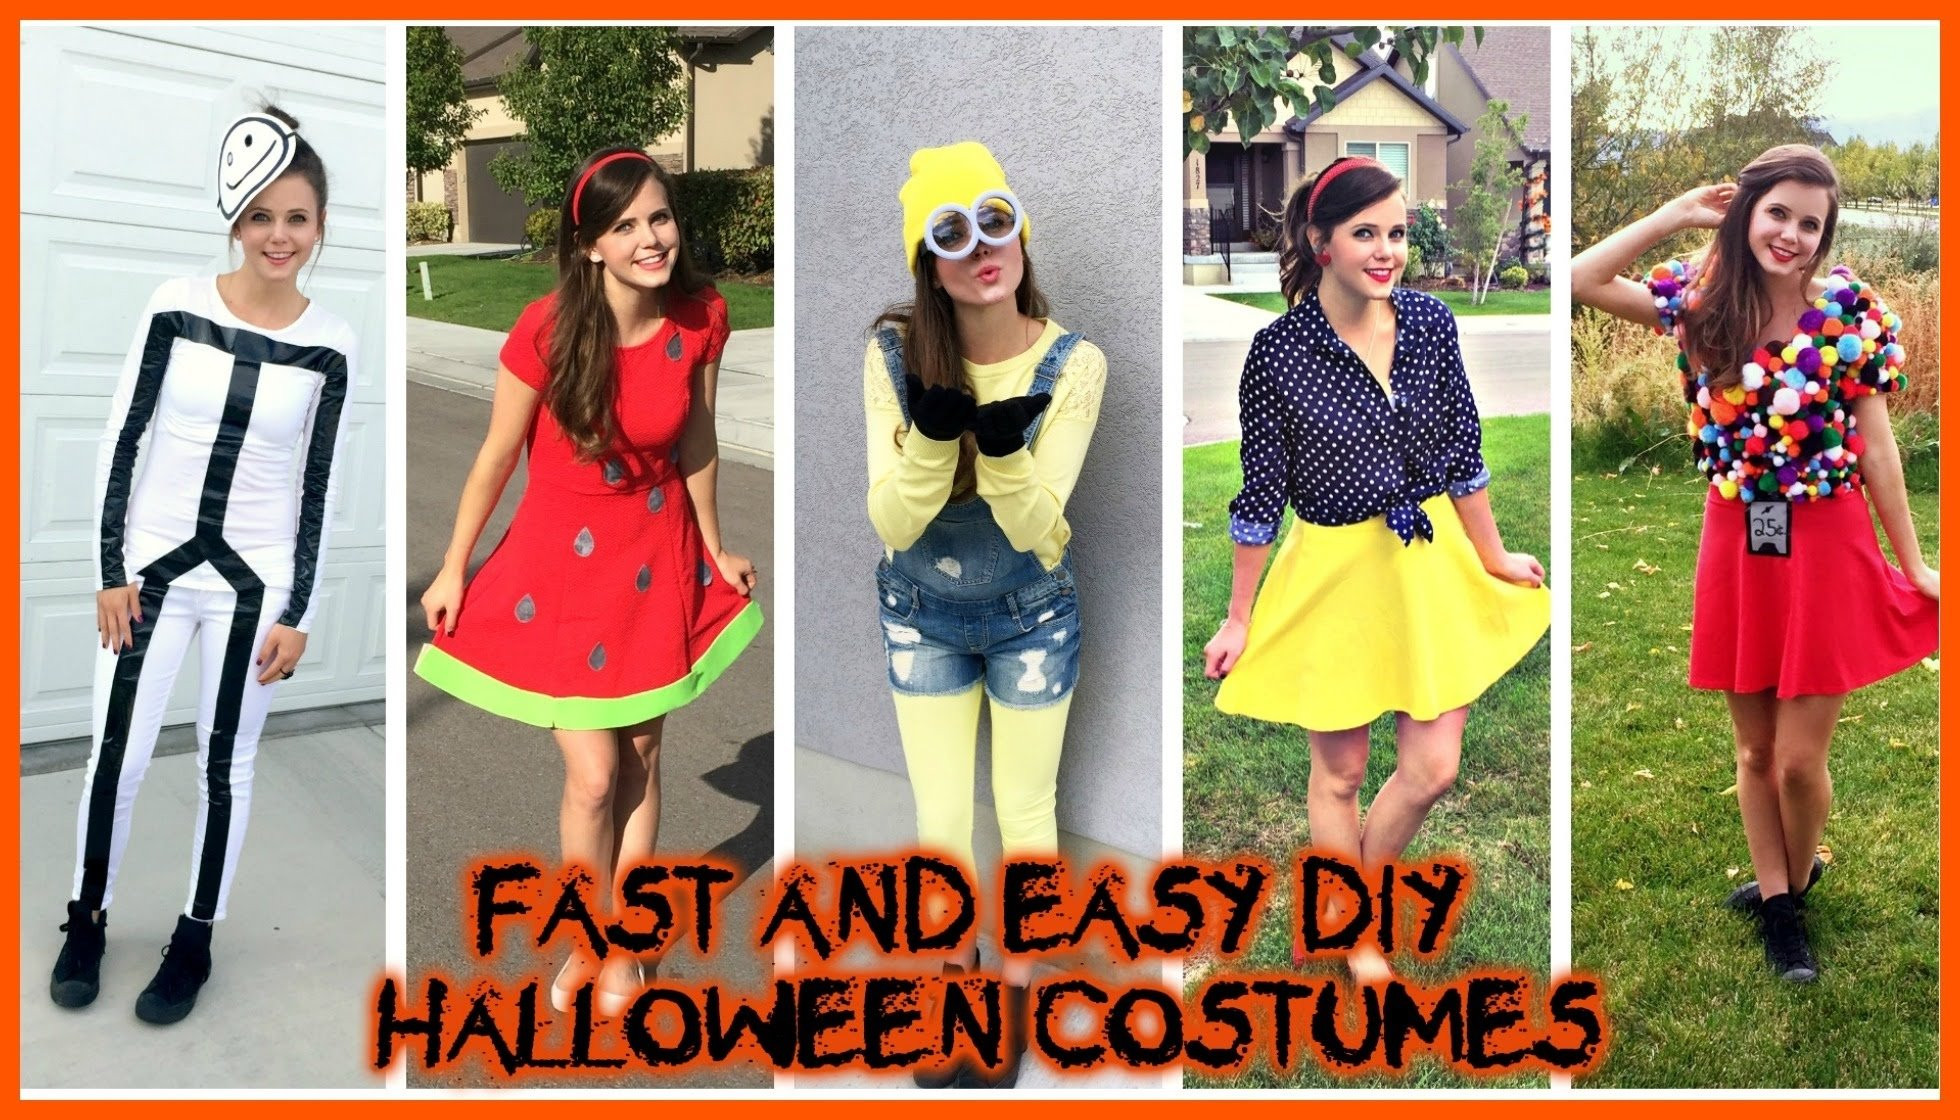 Best ideas about Halloween Costumes DIY . Save or Pin 10 Attractive Last Minute Homemade Halloween Costume Ideas Now.